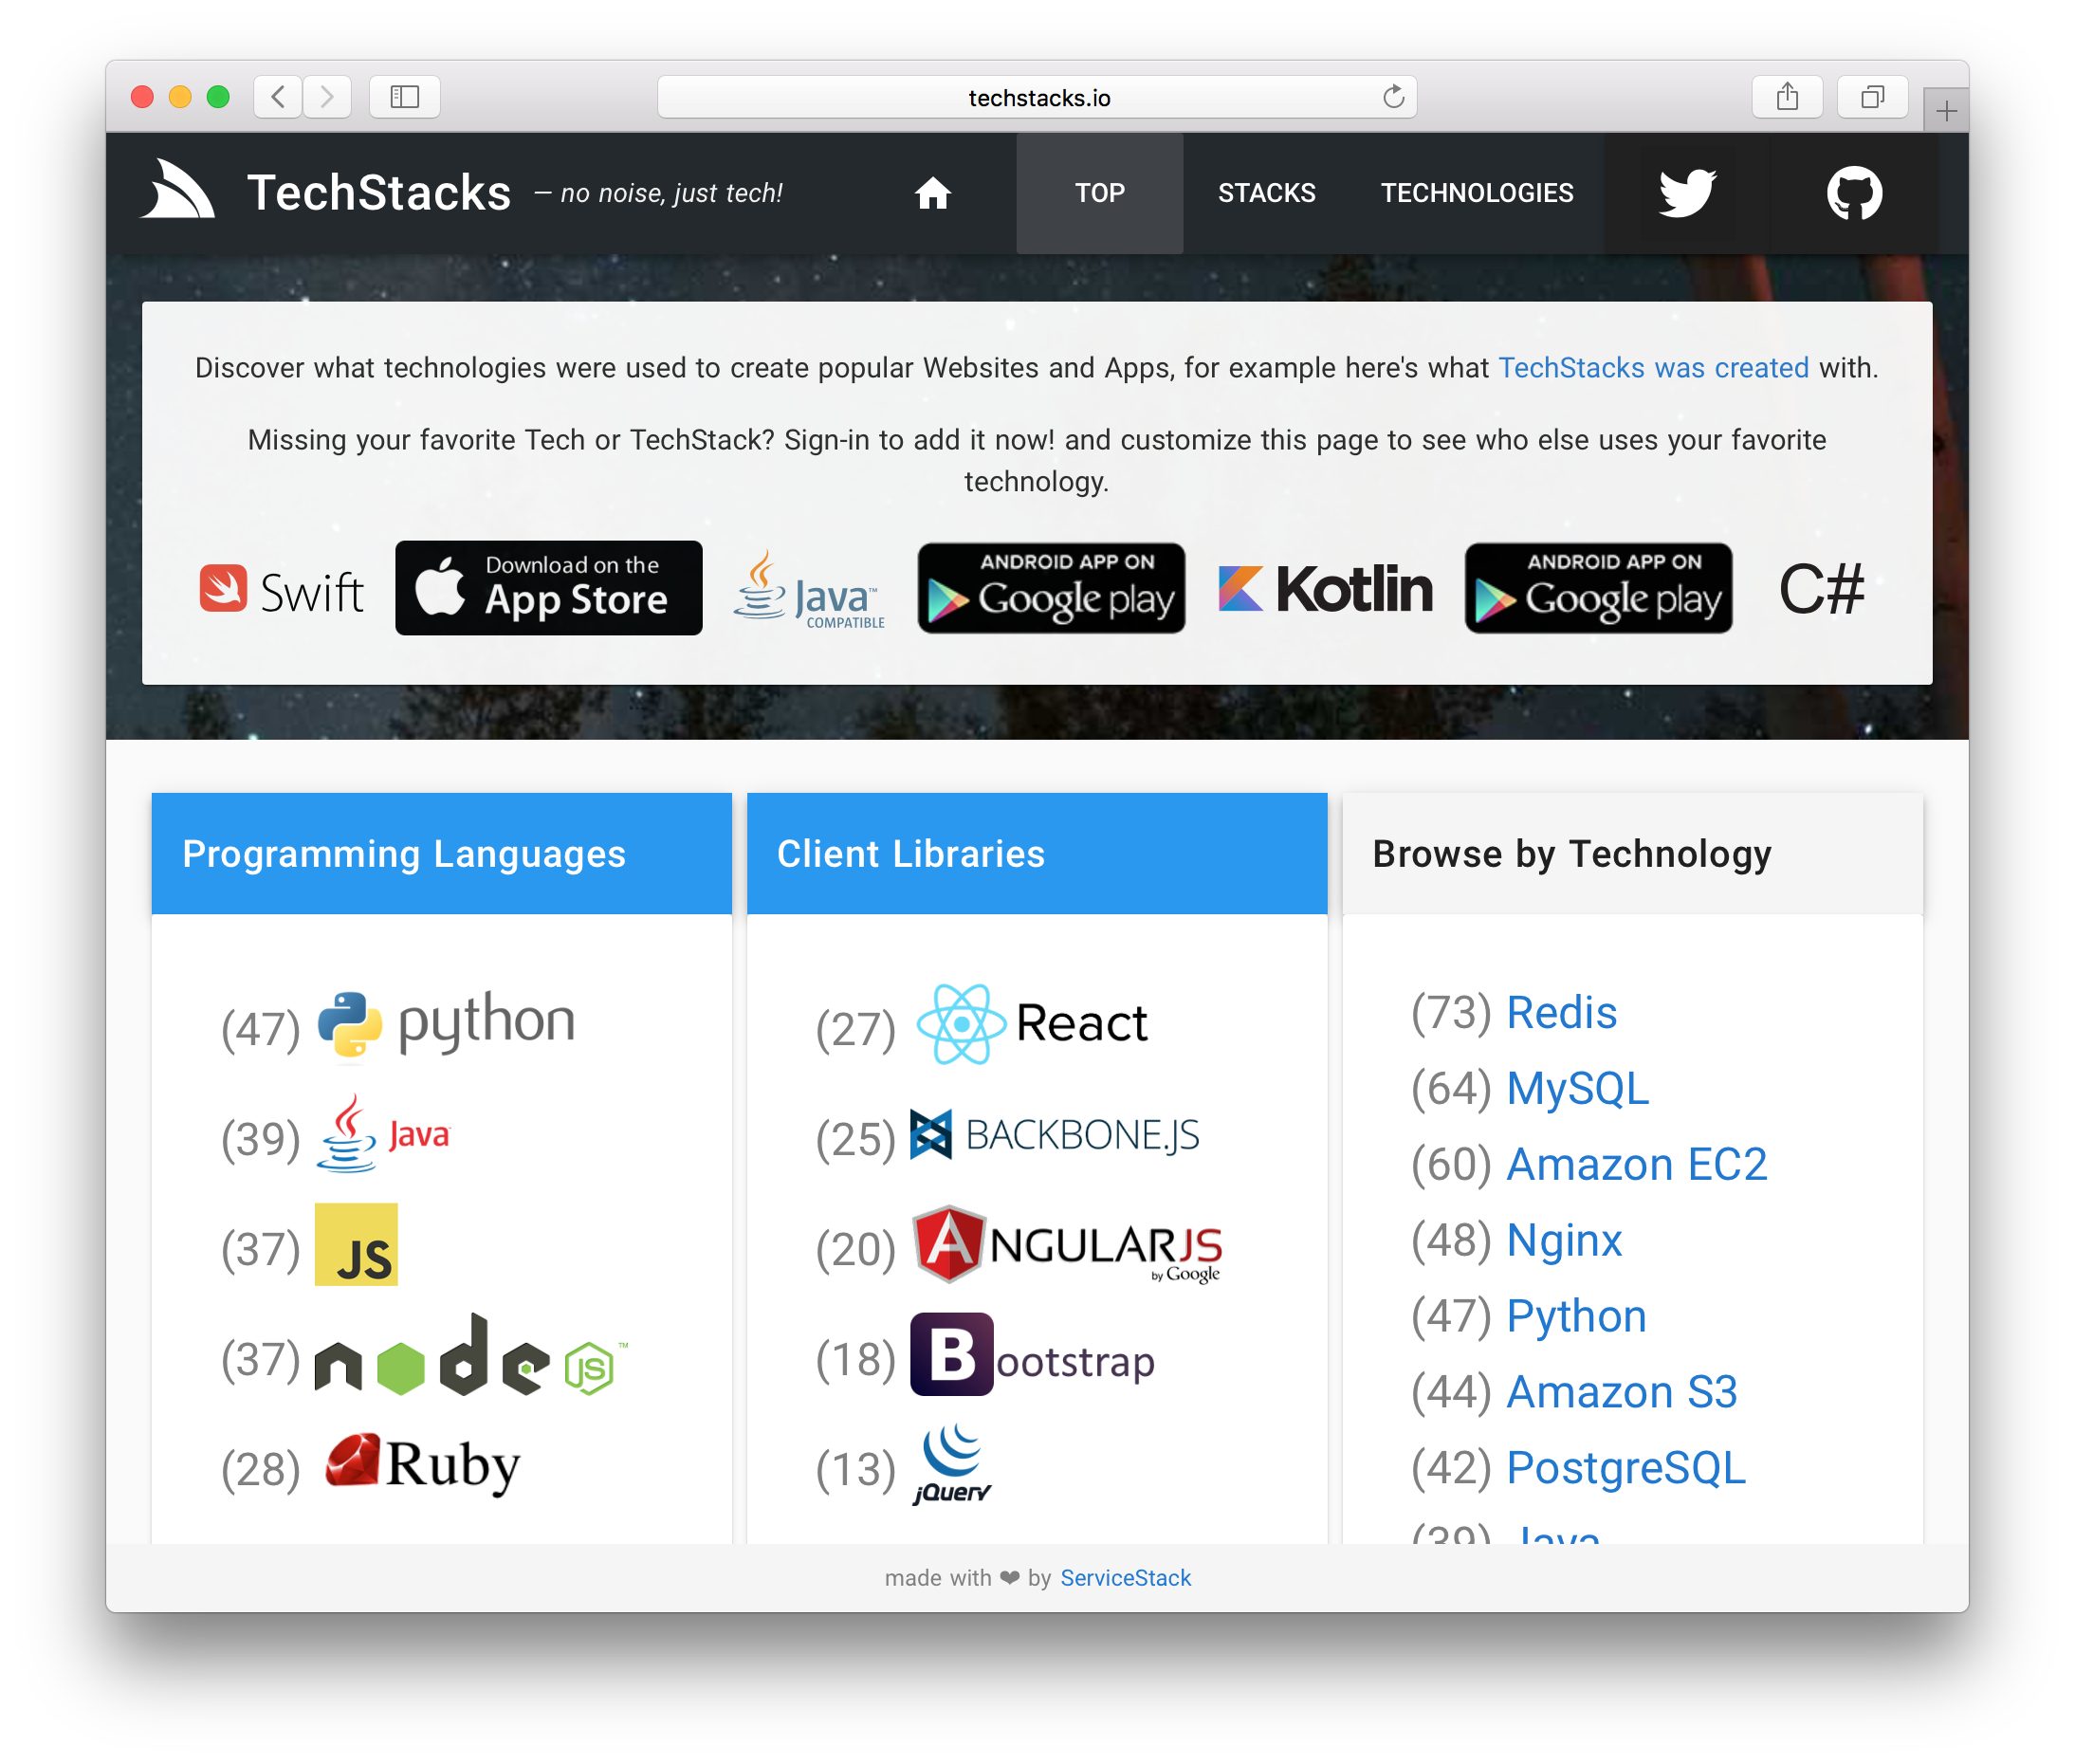 GitHub - NetCoreApps/TechStacks: TechStacks Web App created